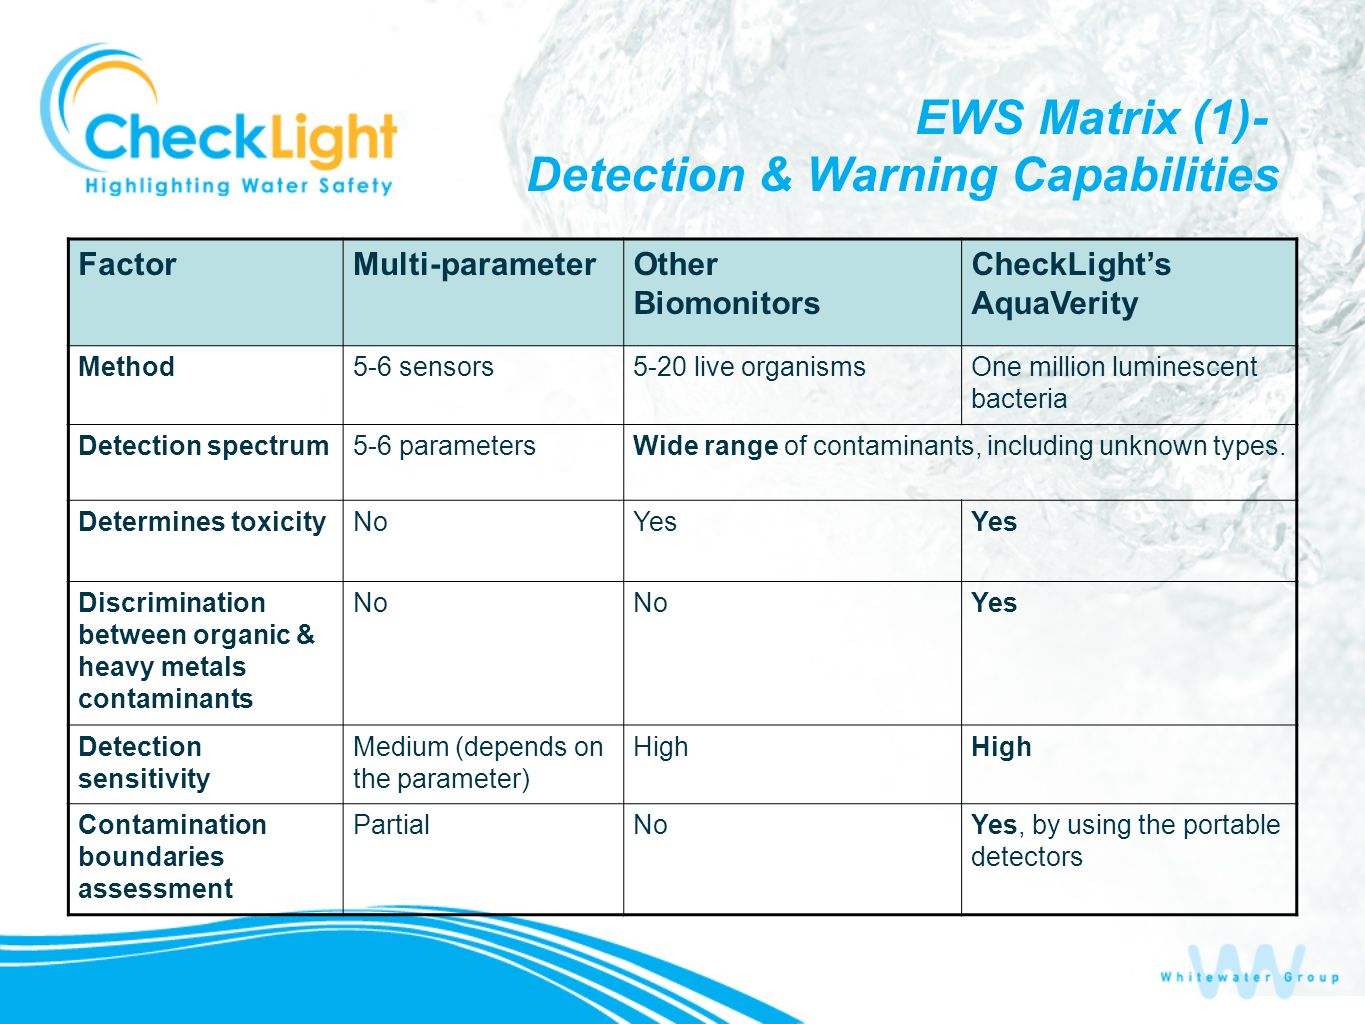 EWS Matrix (1)- Detection & Warning Capabilities